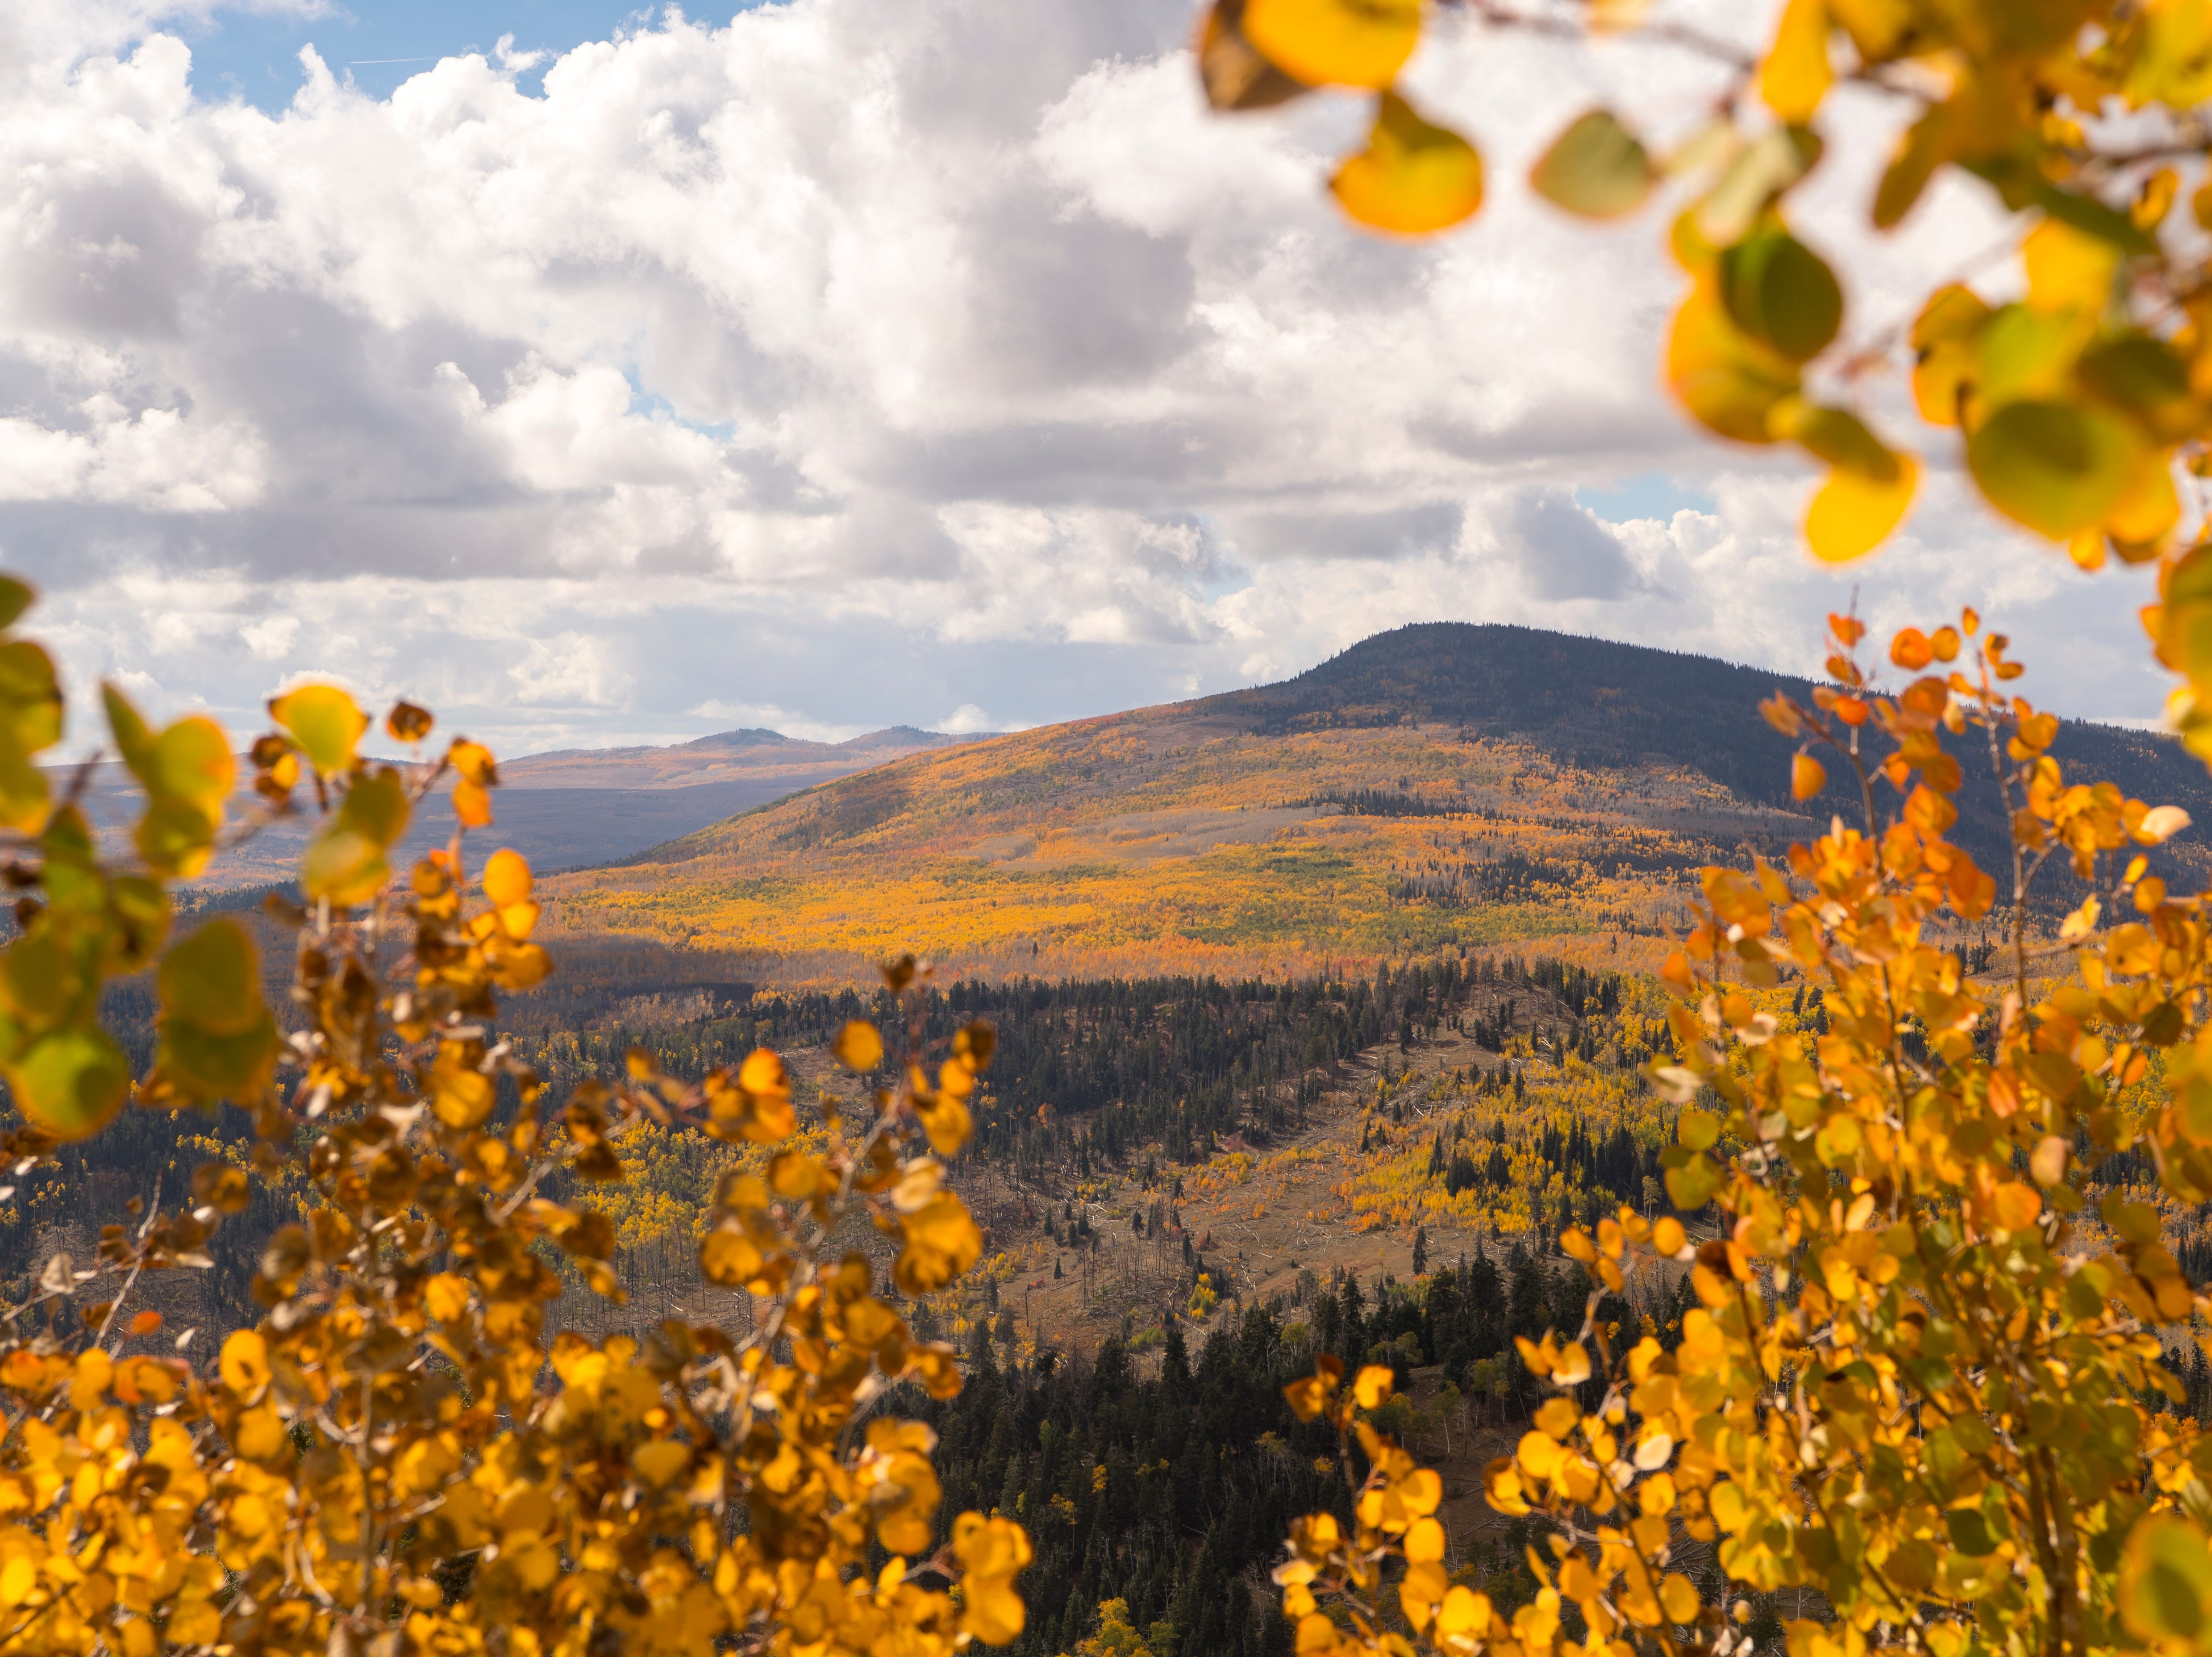 Fall foliage covers the landscape in Dixie National Forest Monday, October 1, 2018. The Aspen trees at the highest altitudes have already dropped their leaves, and high winds will continue the process through this week.